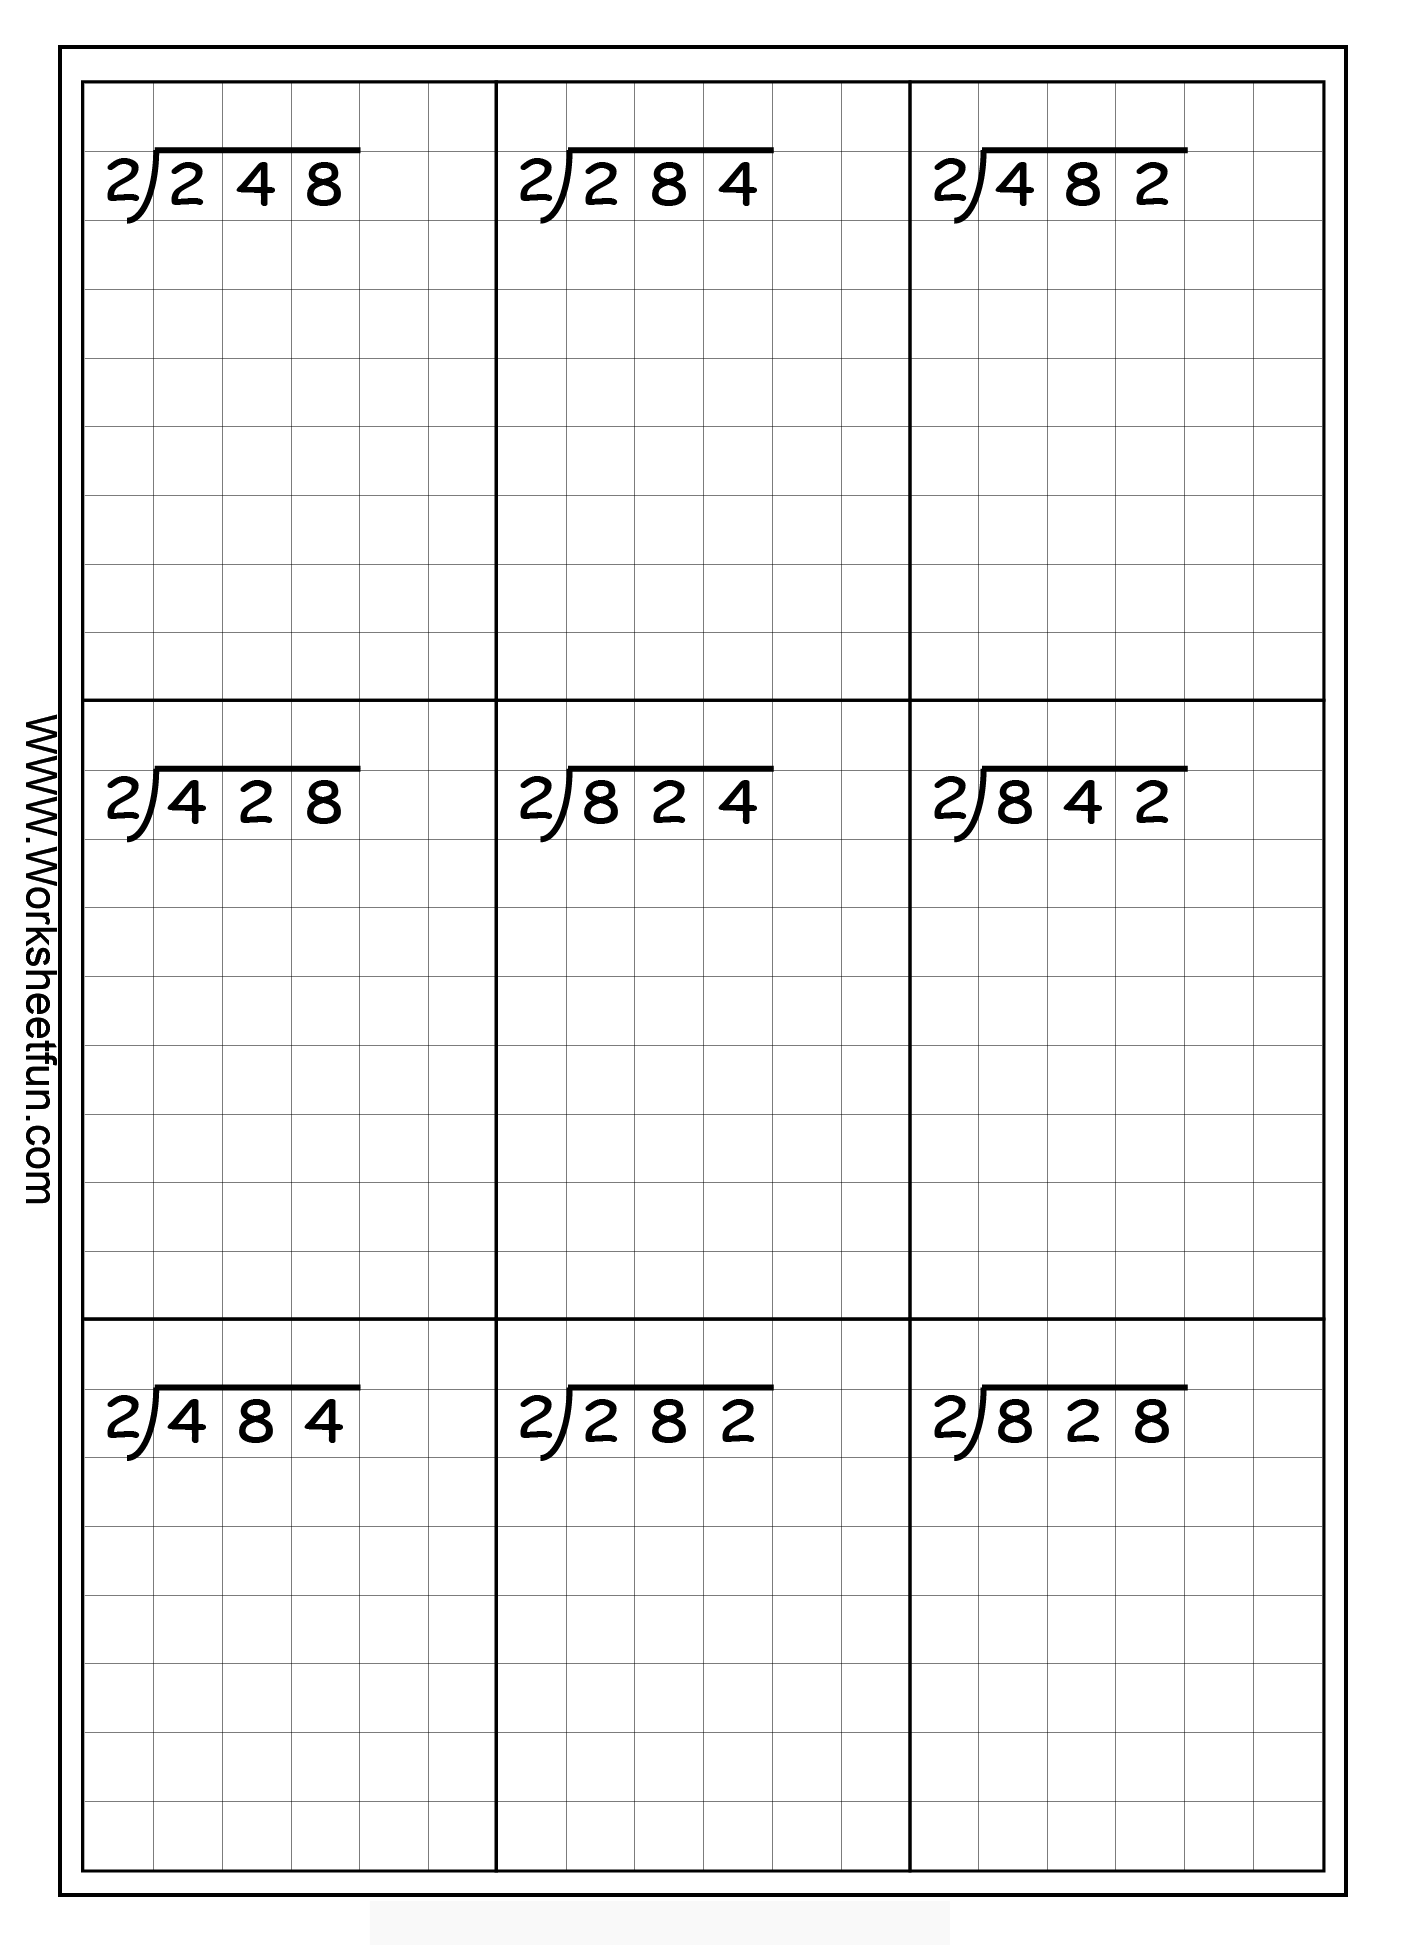 worksheet Long Division With Remainders Worksheets long division 3 digits by 1 digit no remainder 20 worksheets worksheets